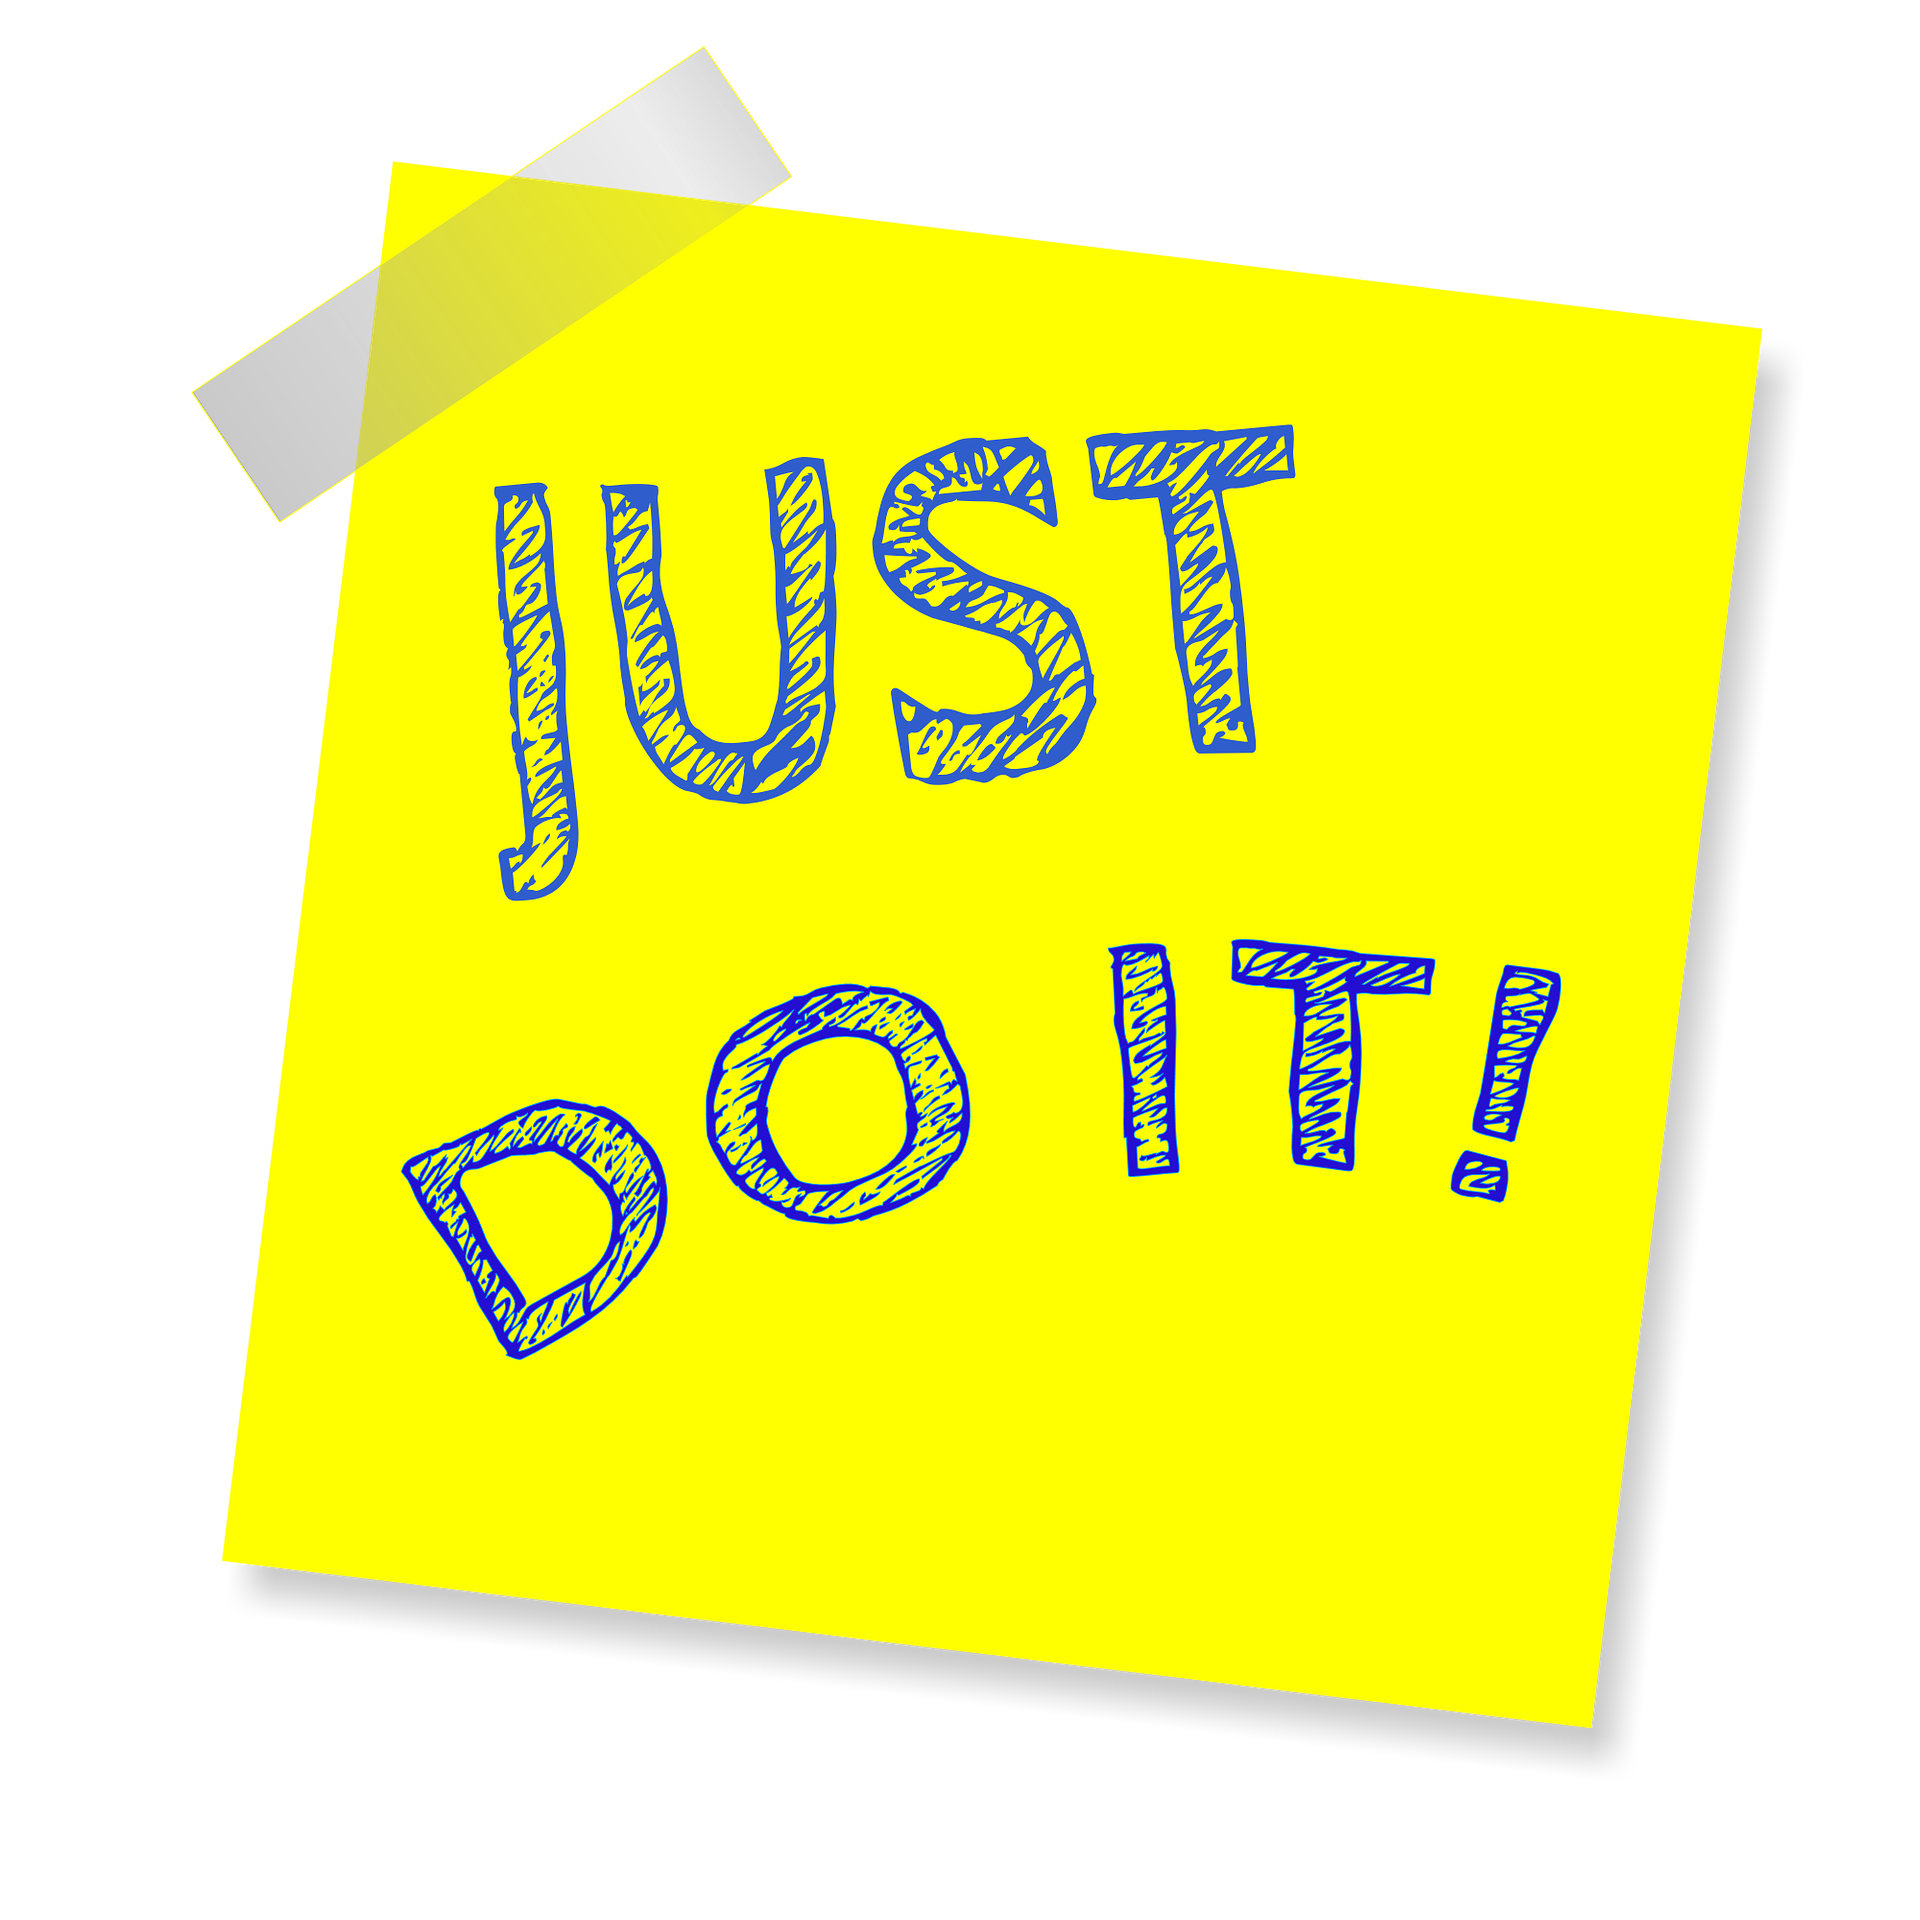 just-do-it-1432951_1920.png